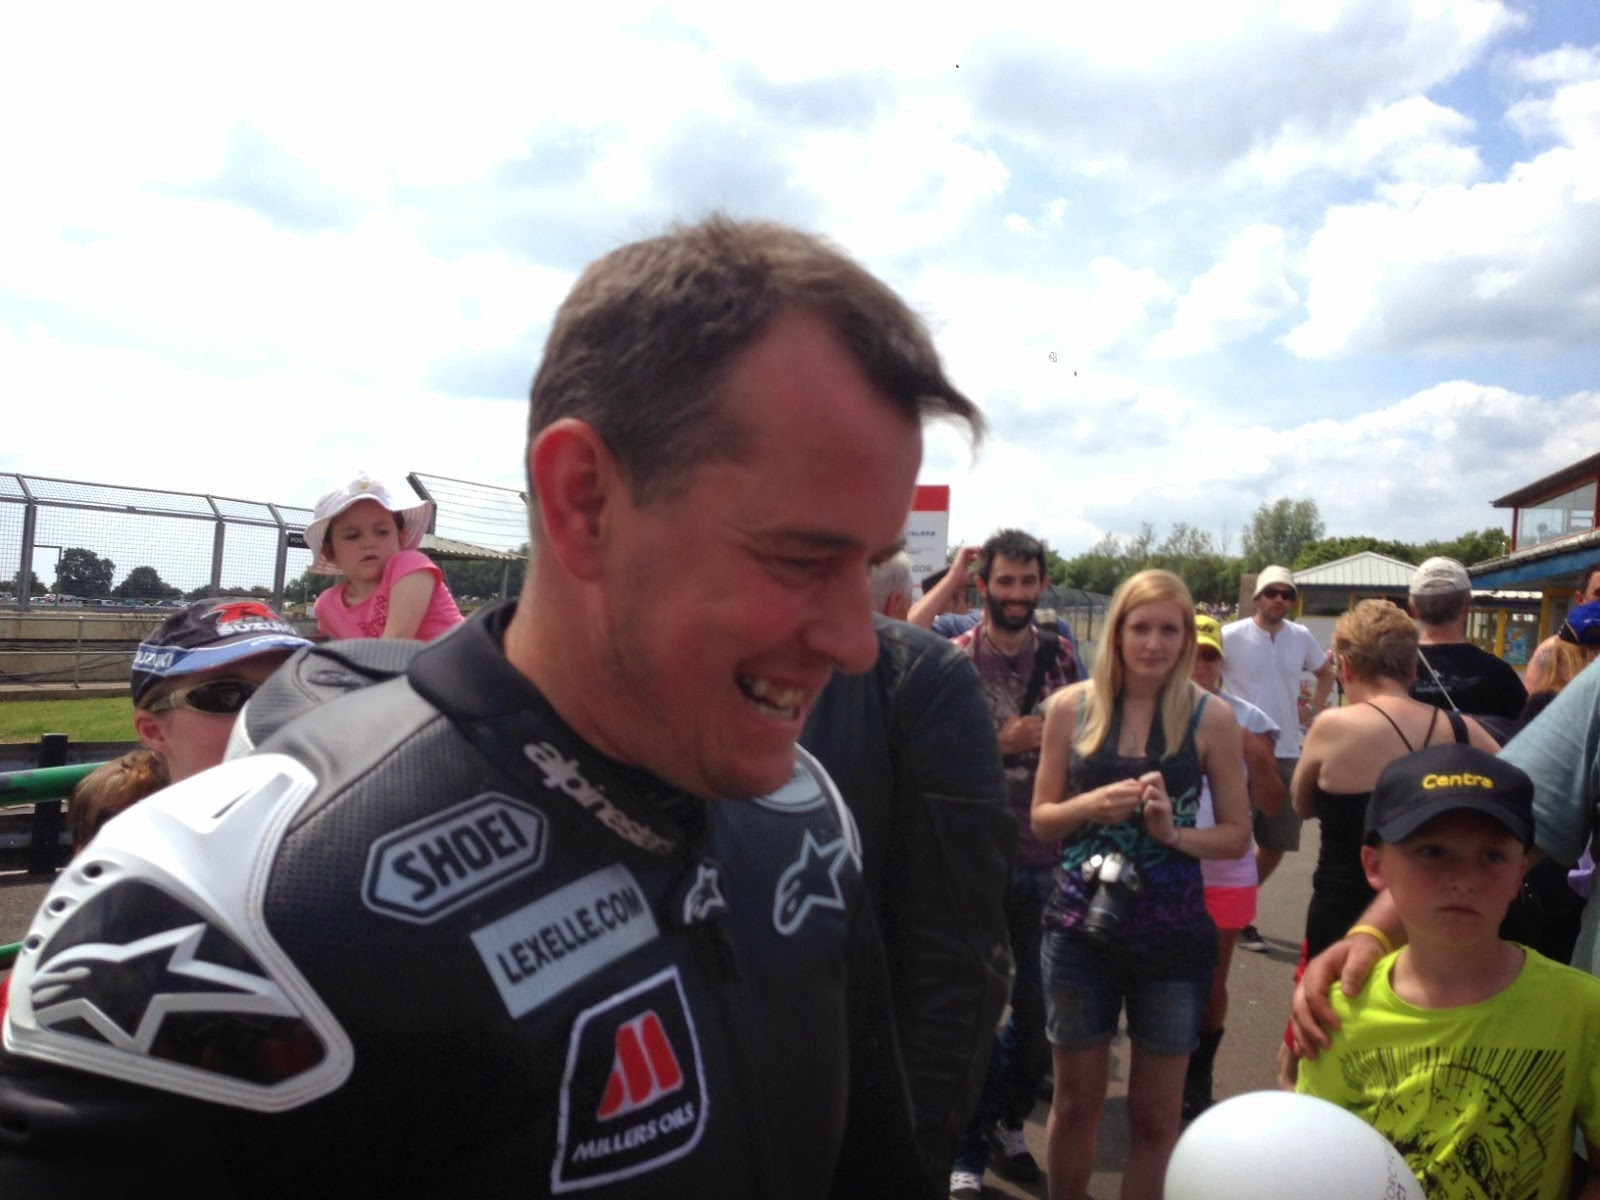 John McGuinness at Castle Combe Grand National Motorcycle Race Meeting